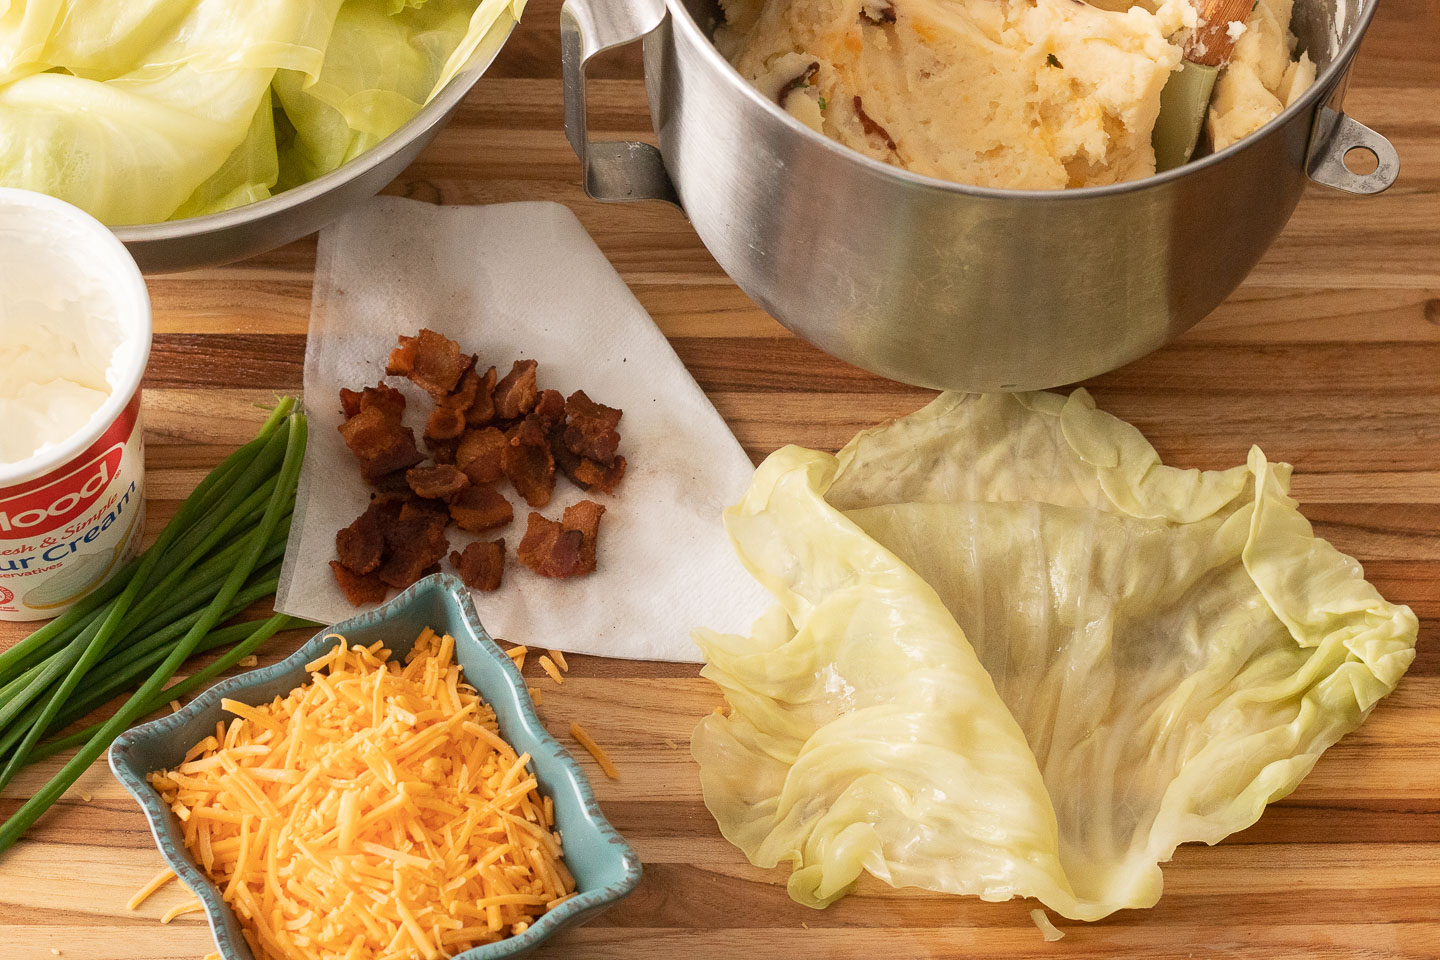 cutting board with cabbage leaf, yellow cheddar in blue ceramic square dish, chives, bacon bits on napkin, hood sour cream, mixing bowl with loaded mashed potatoes